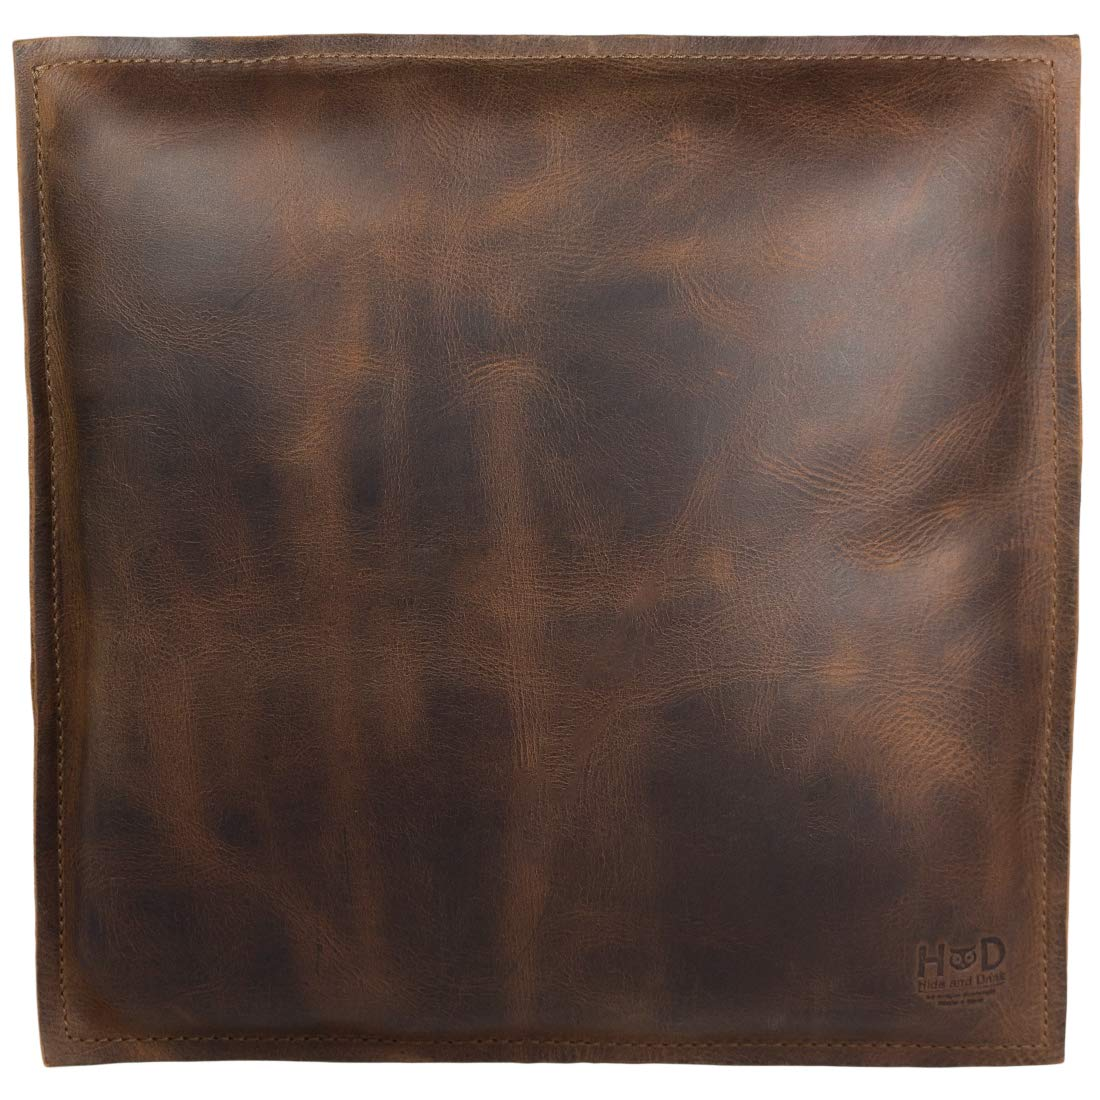 Hide & Drink, Leather Decorative Pillow 12 x 12 in. / Couch, Sofa or Bed/Stylish/Leather Decoration/Home & Office Decor, Handmade :: Bourbon Brown by Hide & Drink